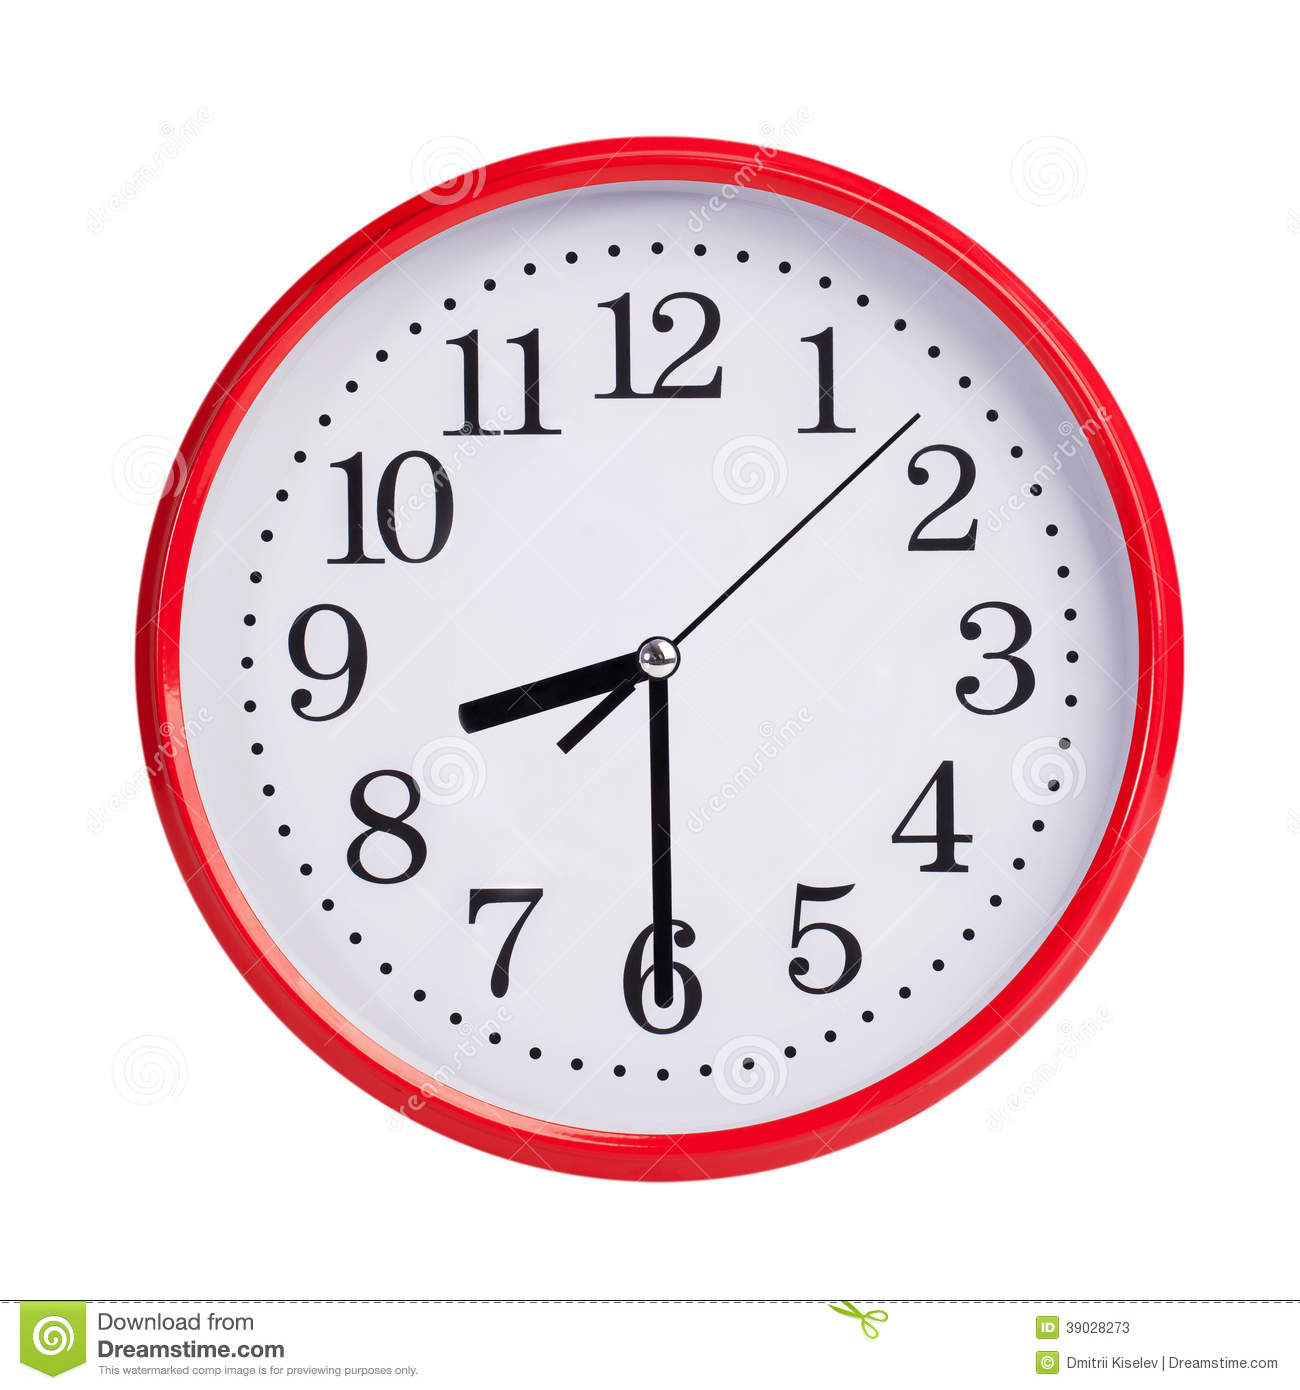 Half Past Eight On A Round Clock Face Stock Photo - Image: 39028273